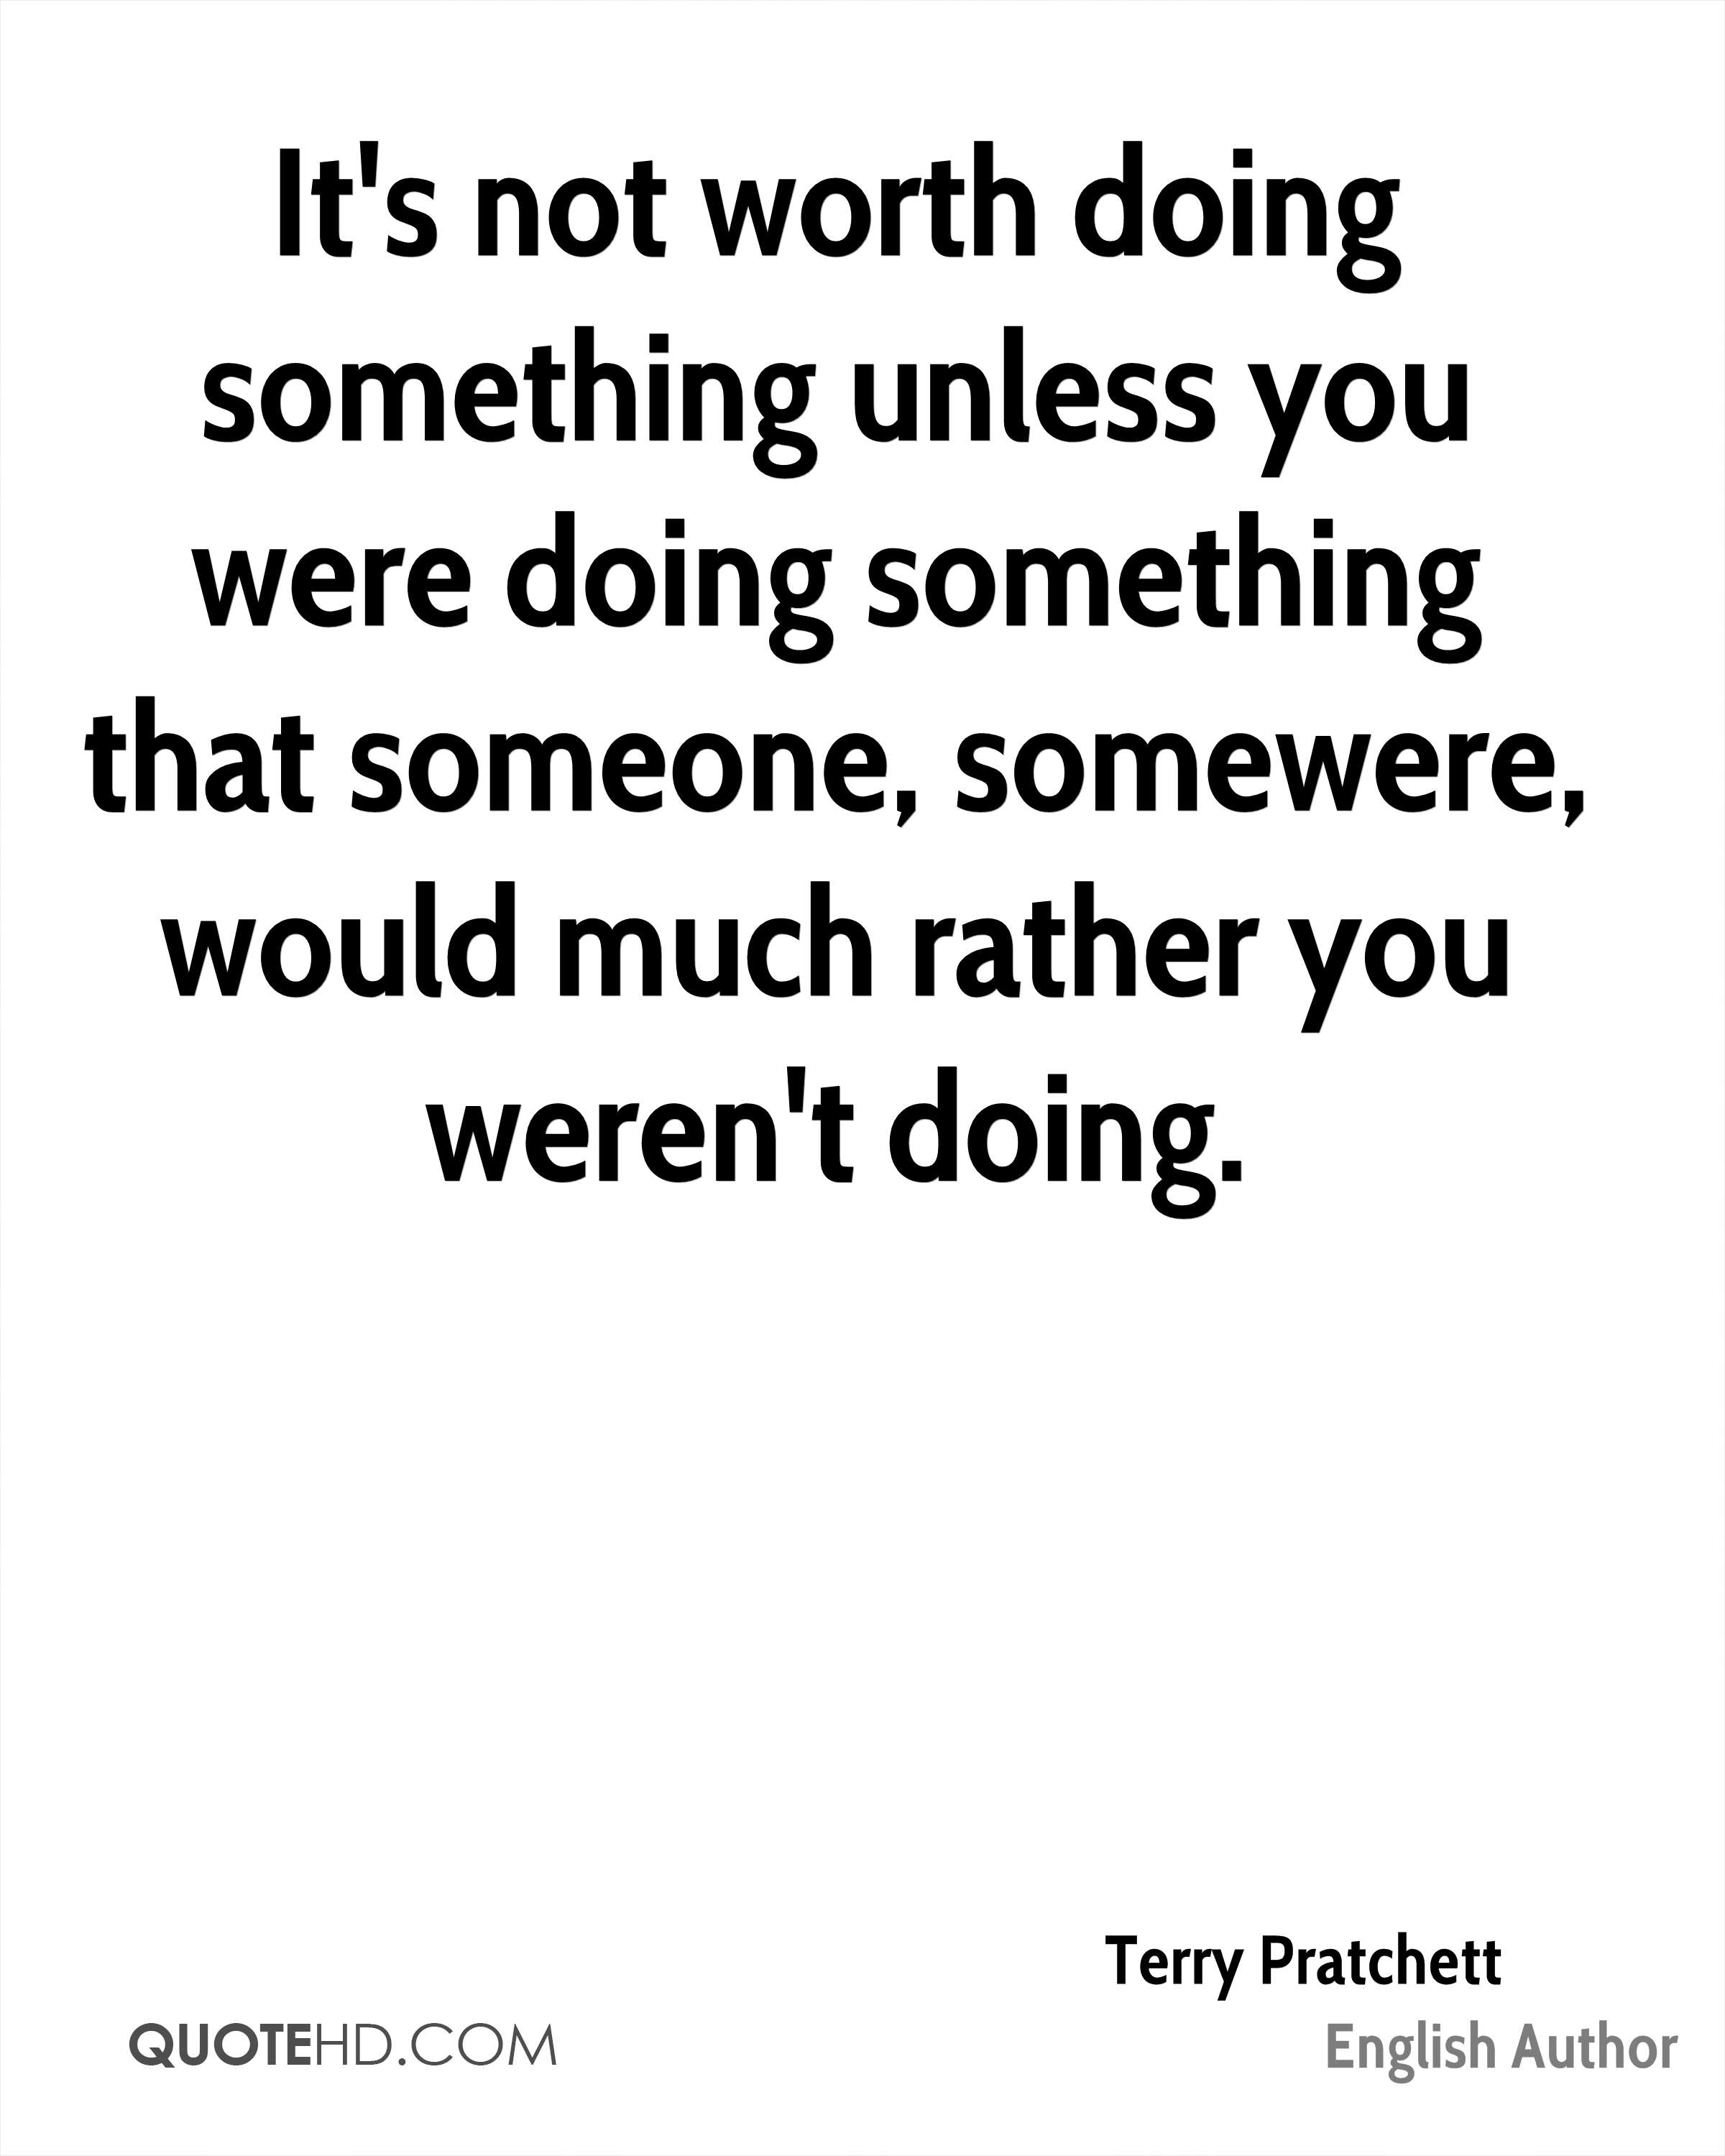 It's not worth doing something unless you were doing something that someone, somewere, would much rather you weren't doing.